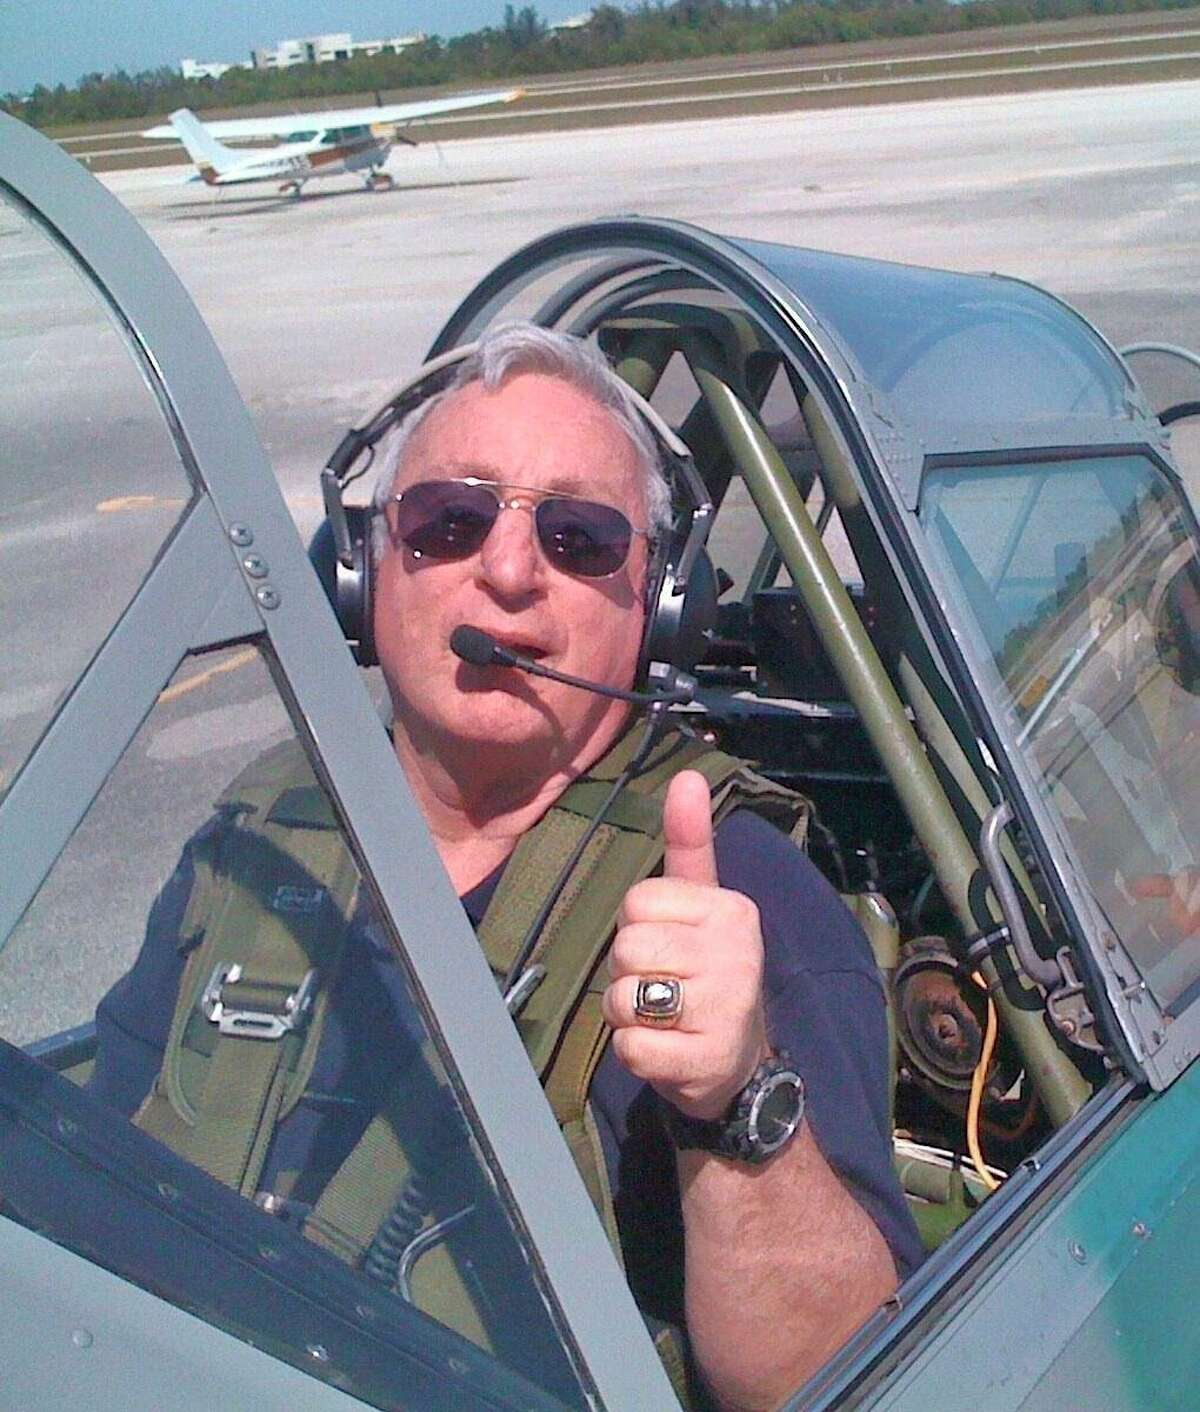 """William """"Billy"""" Rands gives a thumbs up from the cockpit of anairplane. Rands was an avid and licensed commercial pilot, who loved flying around the Thumb. (Courtesy Photo)"""